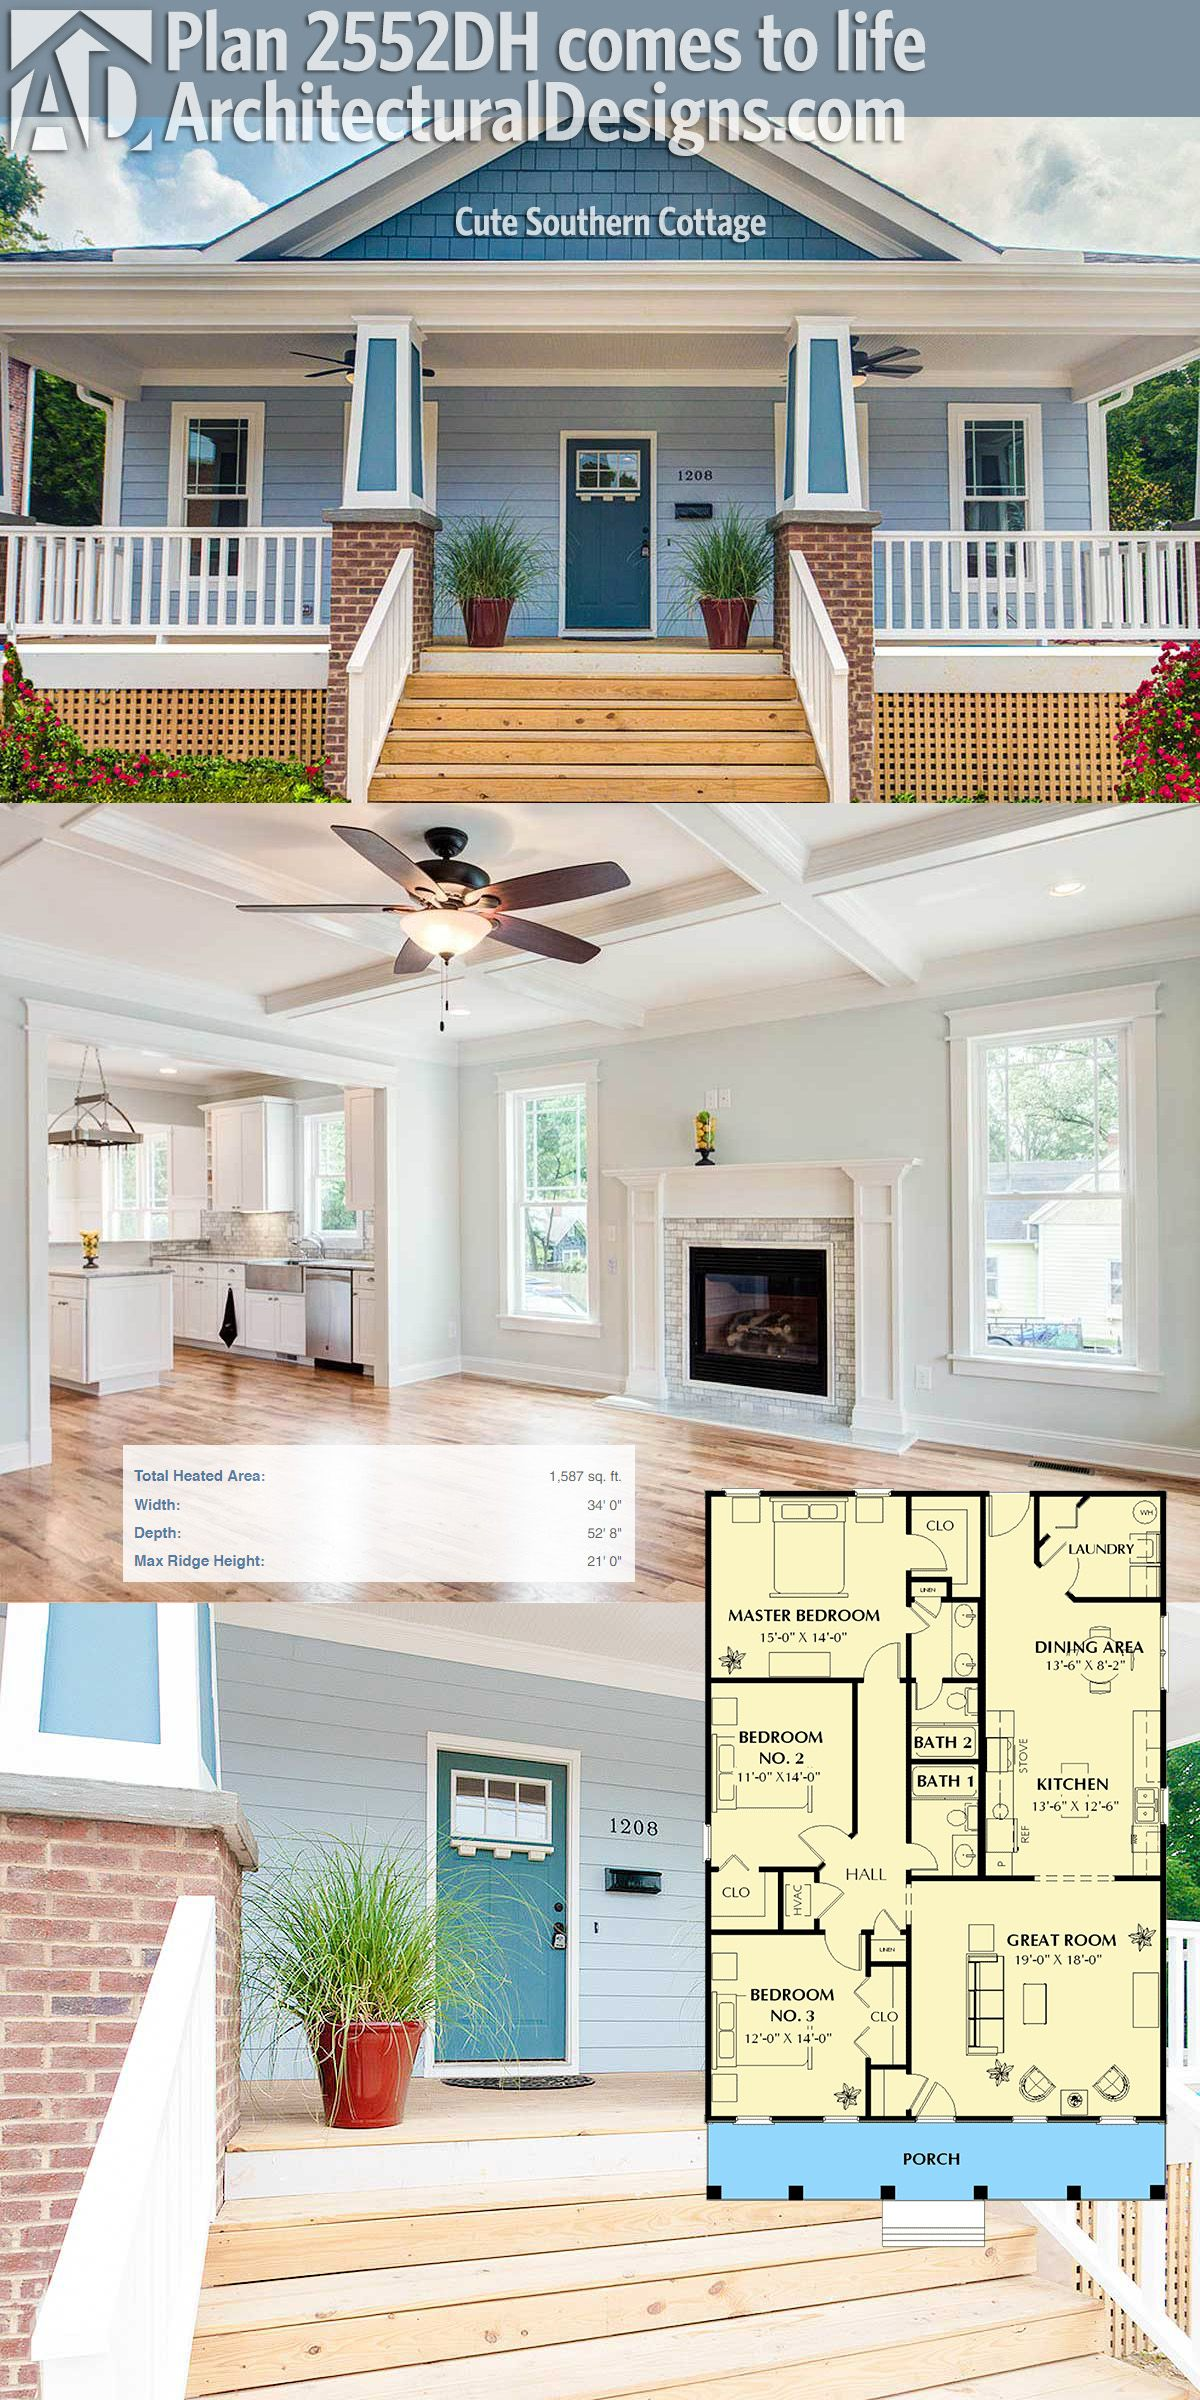 Plan 2552DH Cute Southern Cottage Cottage house Square feet and